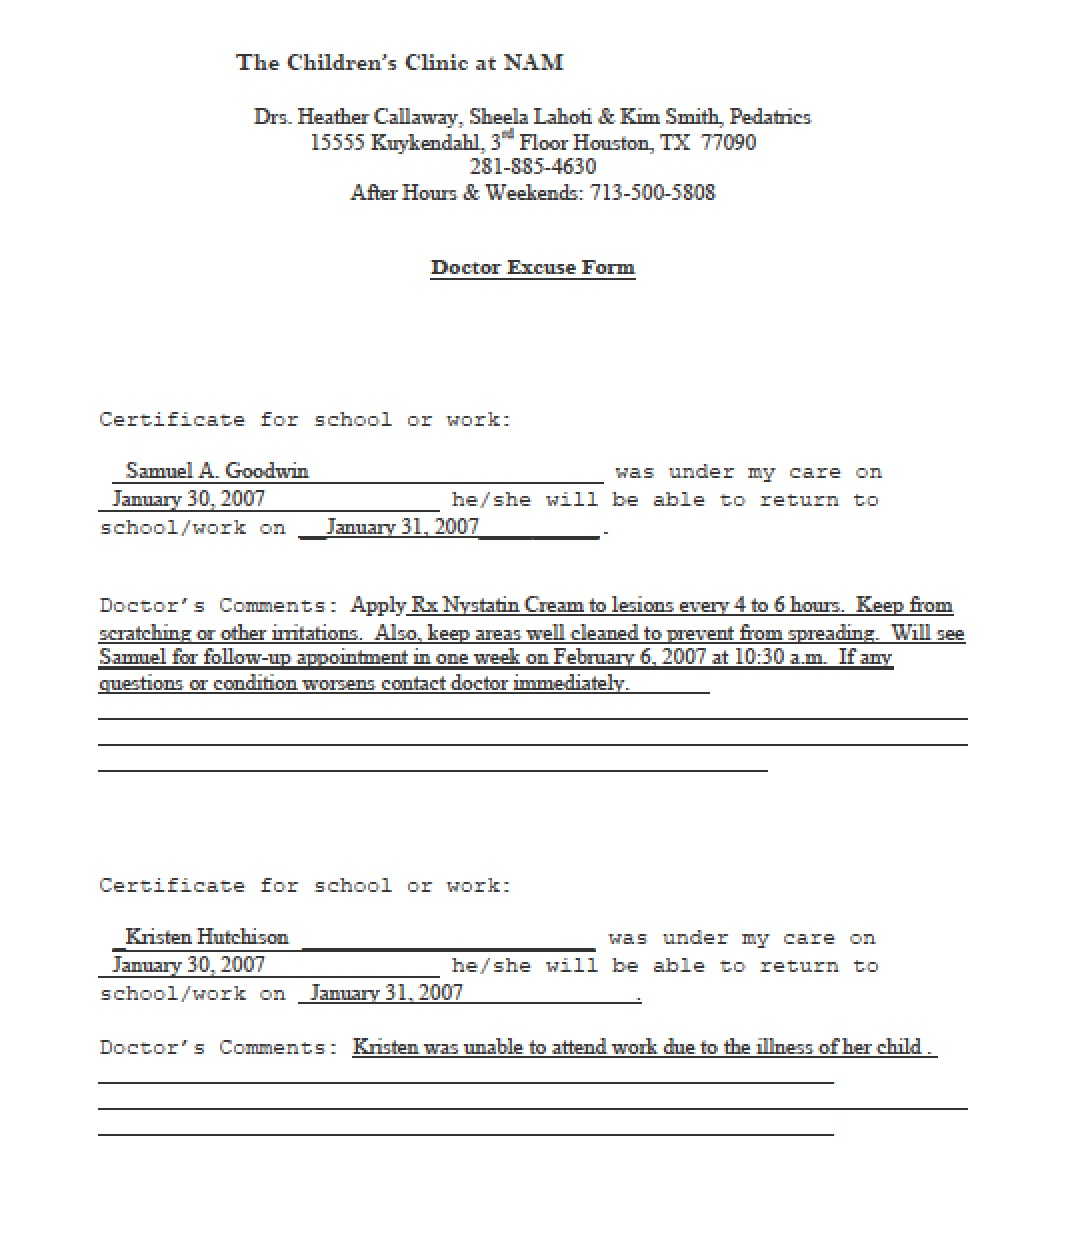 Doctors note template download doctors note templates pdf rtf word wikidownload altavistaventures